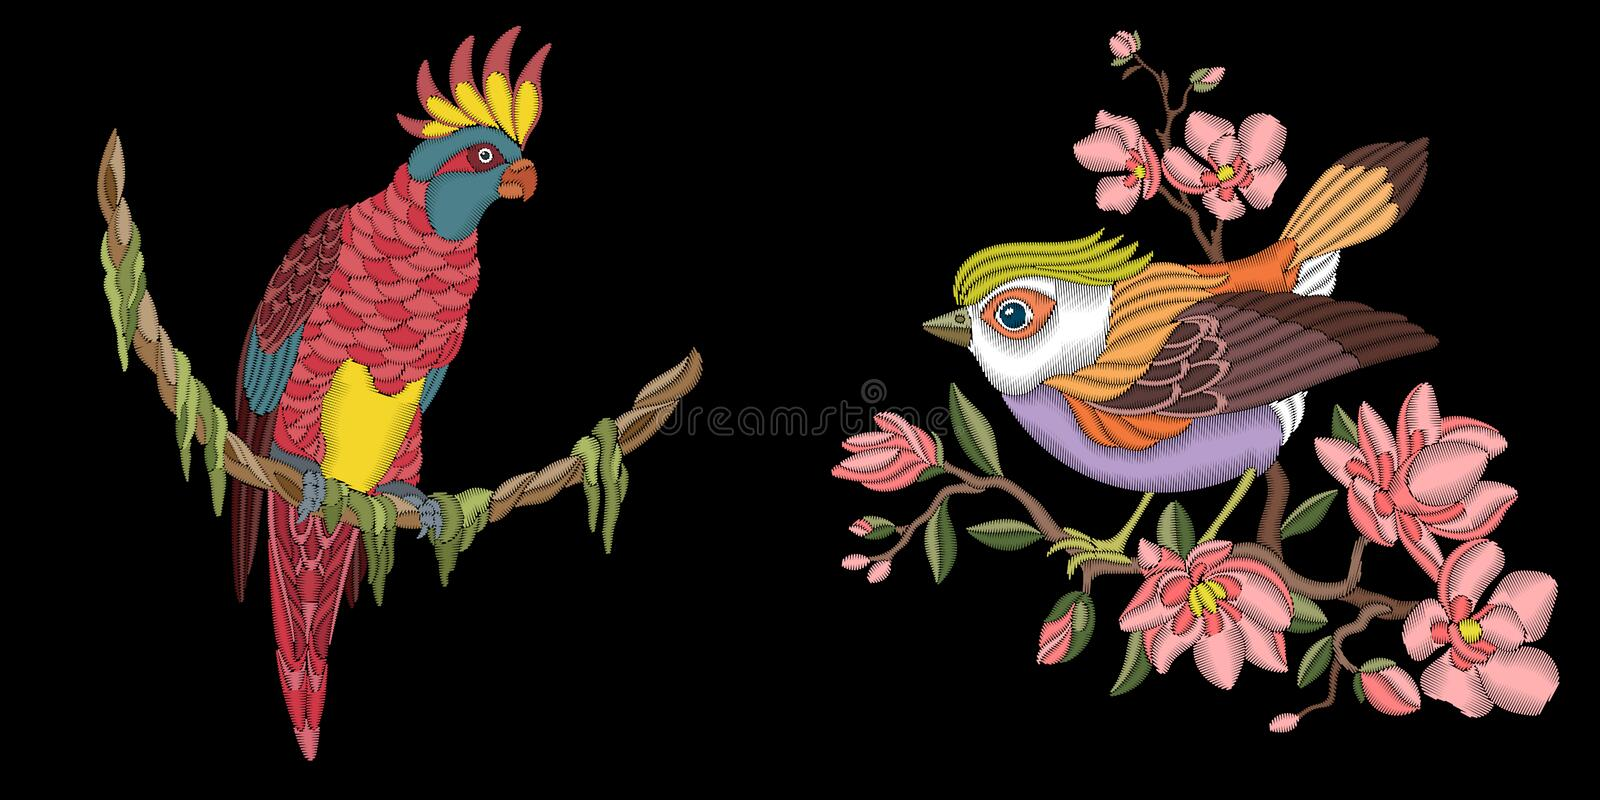 Embroidery birds design stock illustration